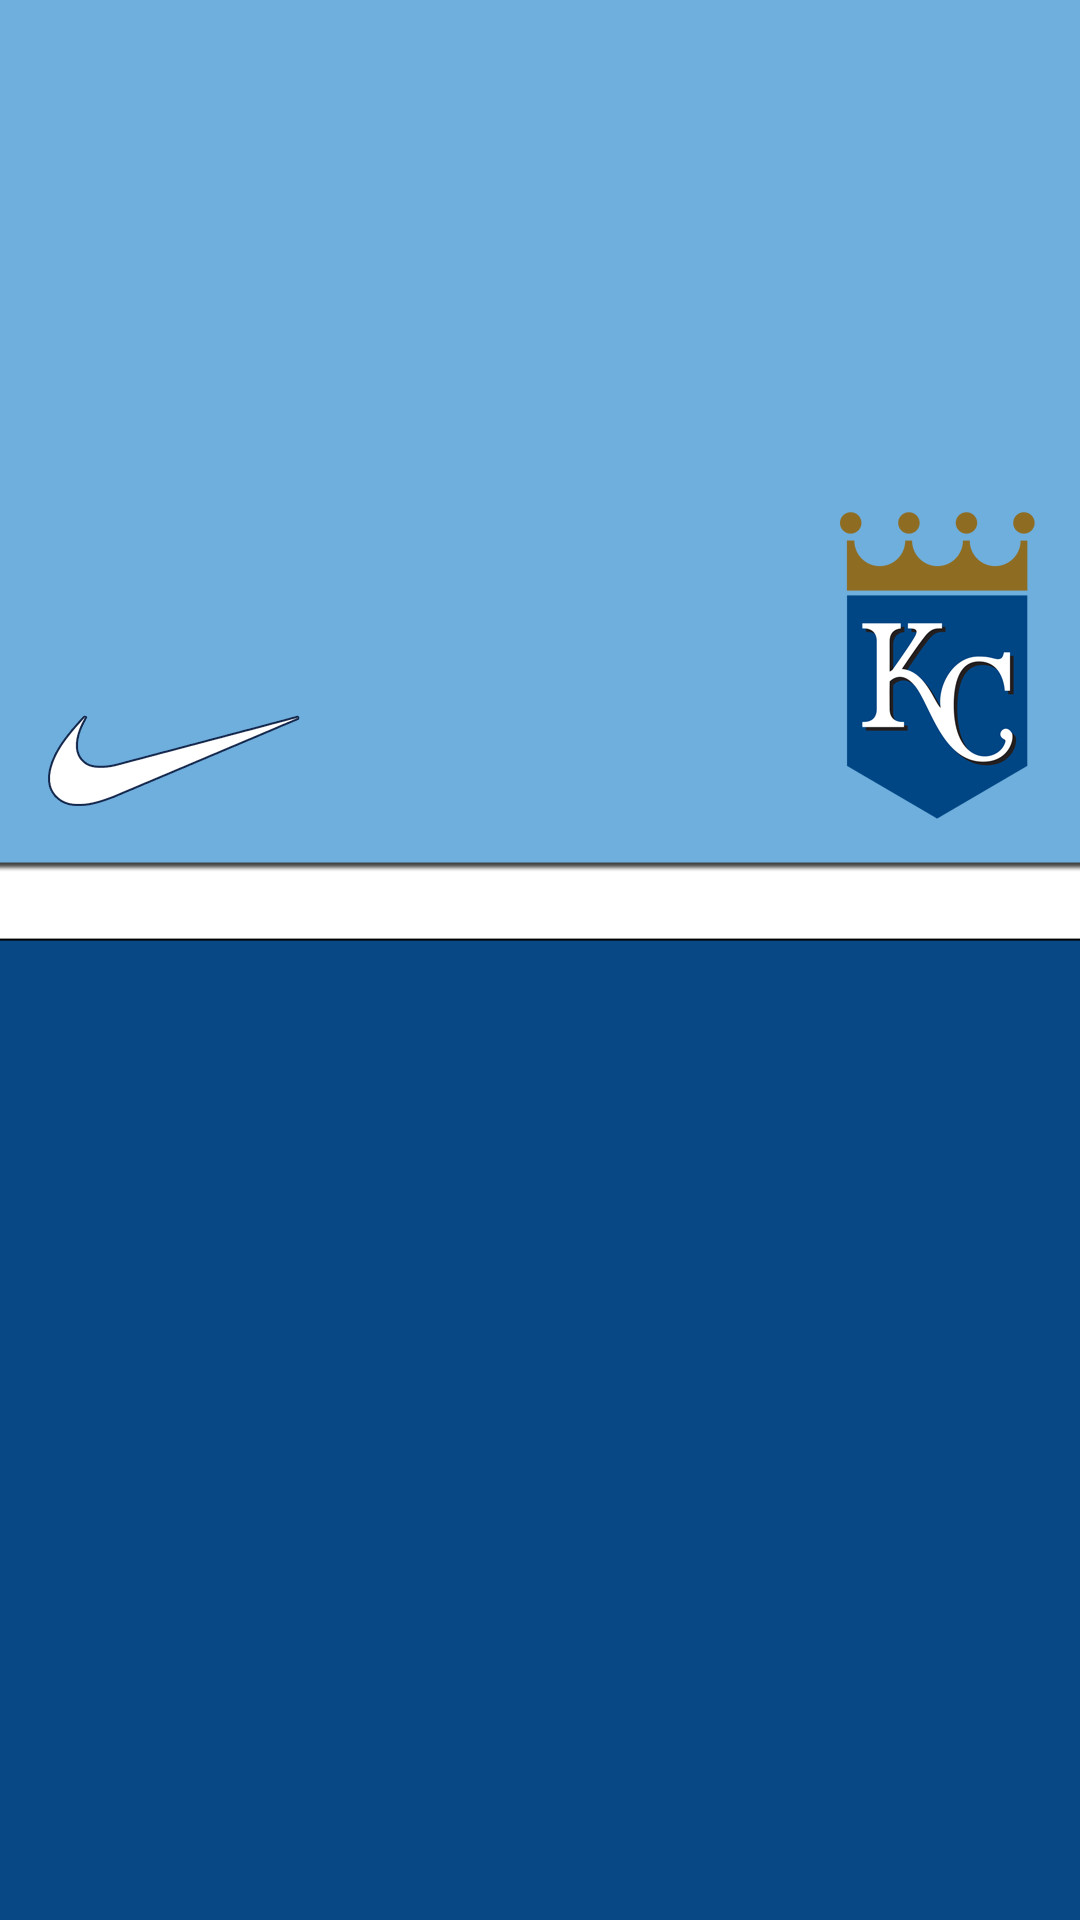 1080x1920 Kansas City Royals Nike IPhone wallpaper HD. Free desktop .